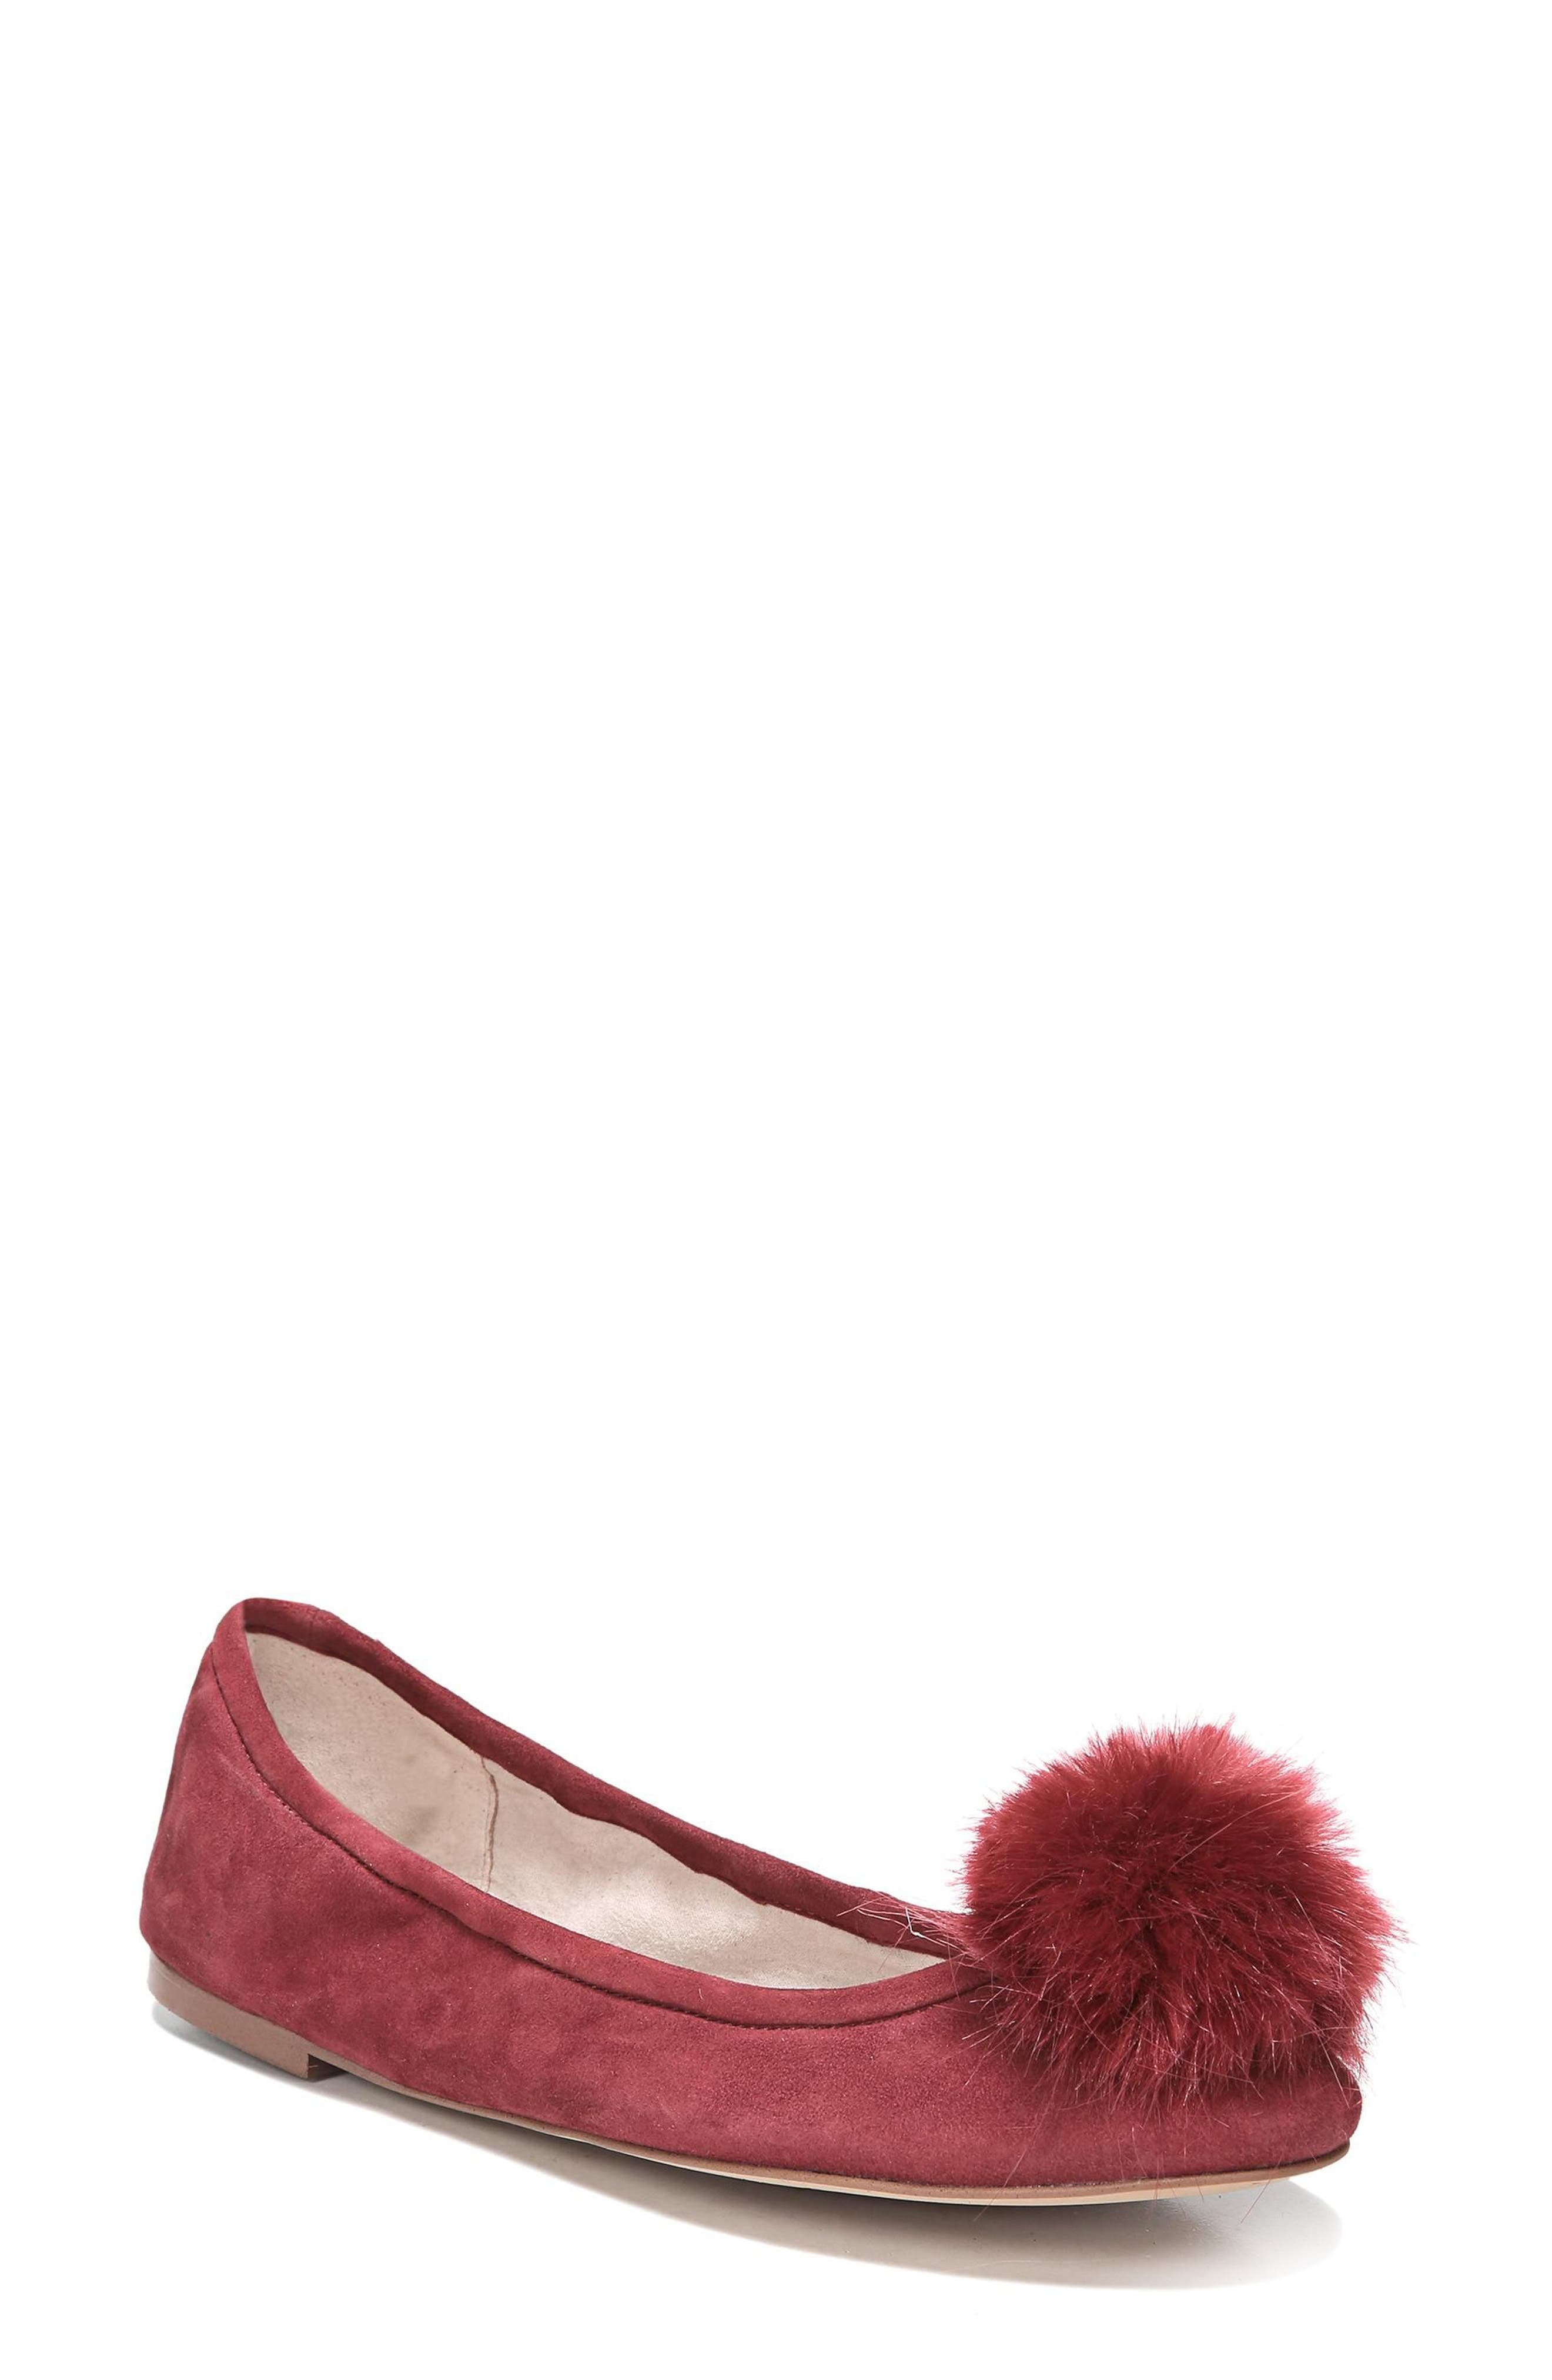 Farina Flat with Faux Fur Pompom,                             Main thumbnail 1, color,                             Tango Red Leather